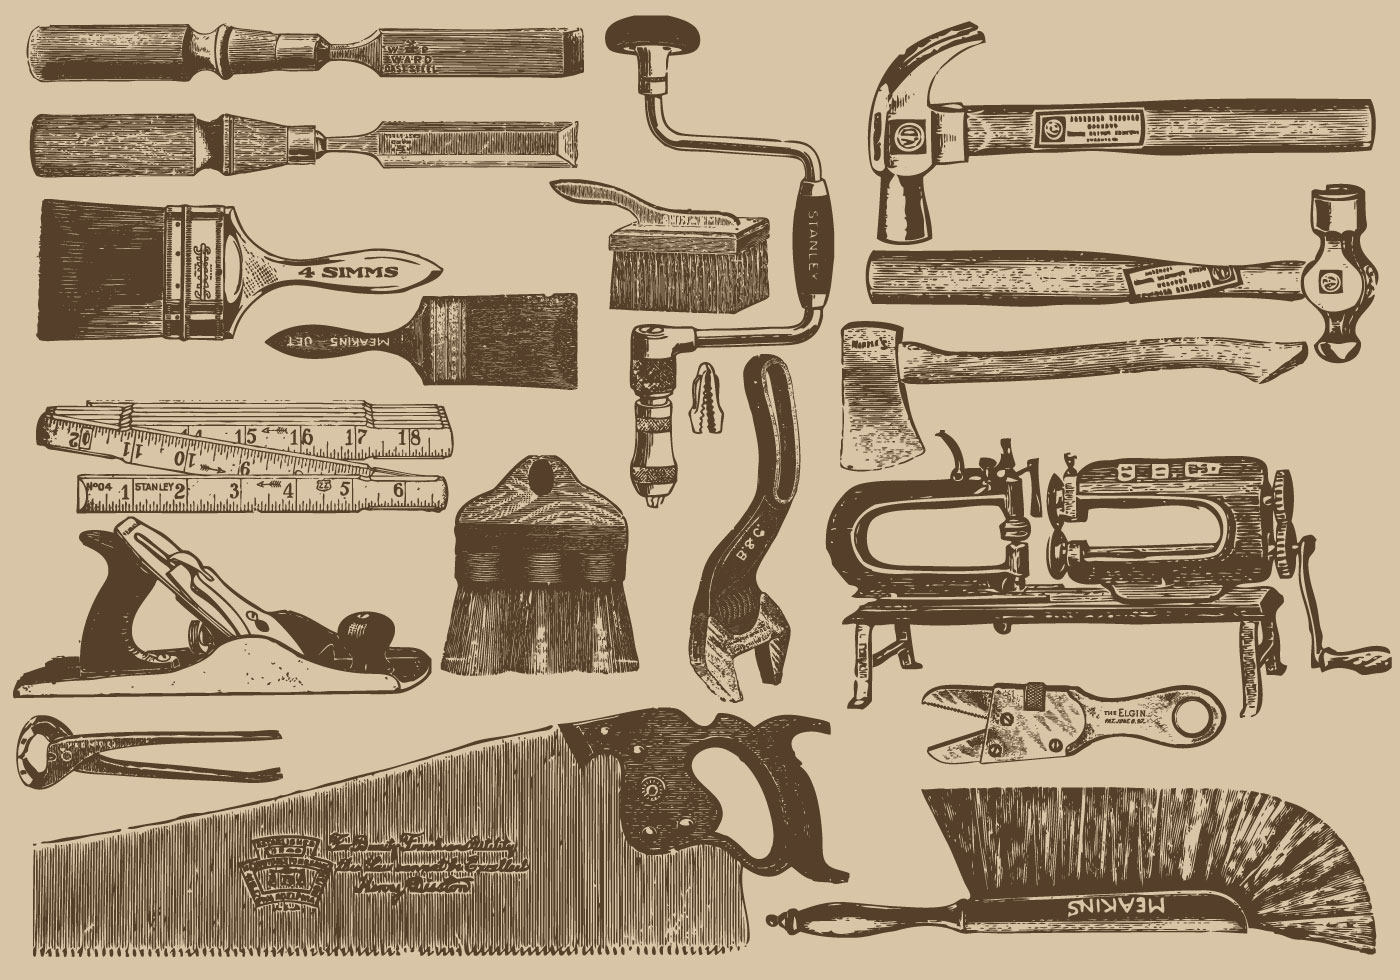 Vintage Carpenter Tools - Download Free Vector Art, Stock ...